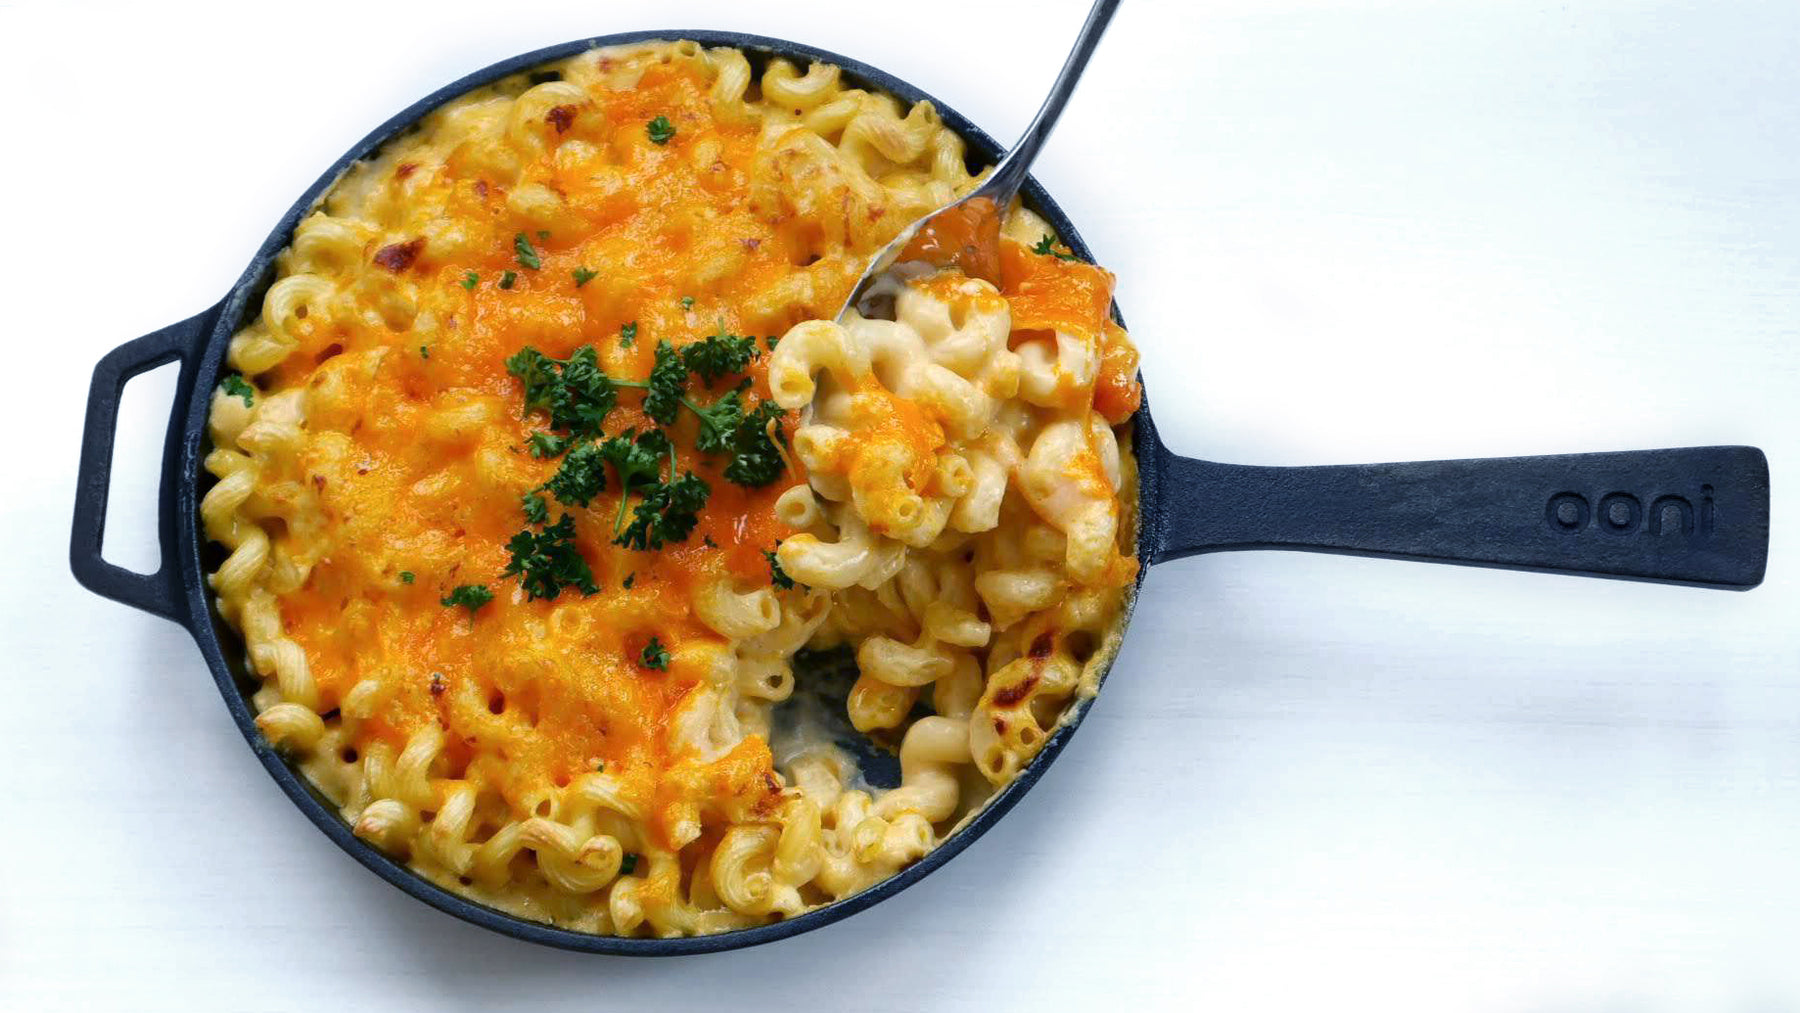 Skillet Baked Mac and Cheese